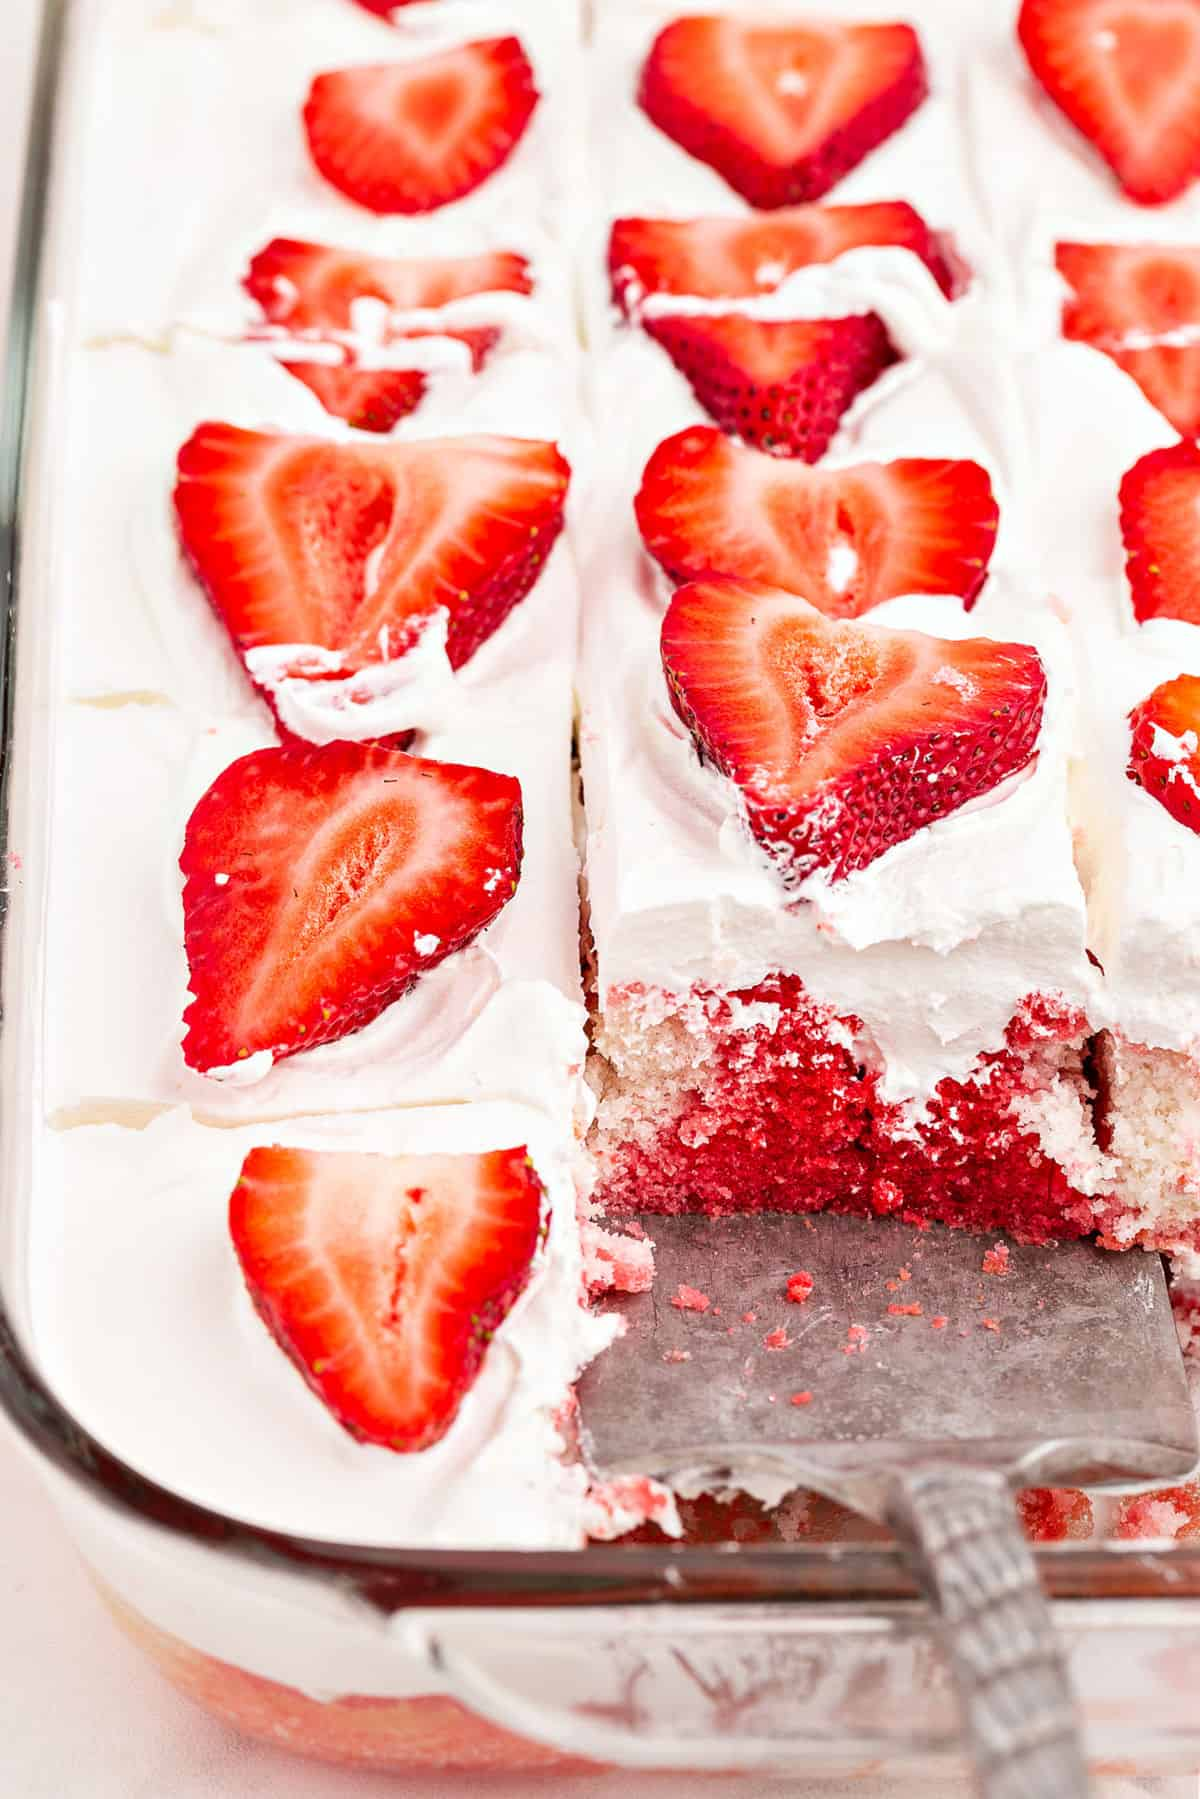 Clear glass baking dish with strawberry poke cake and one slice removed.